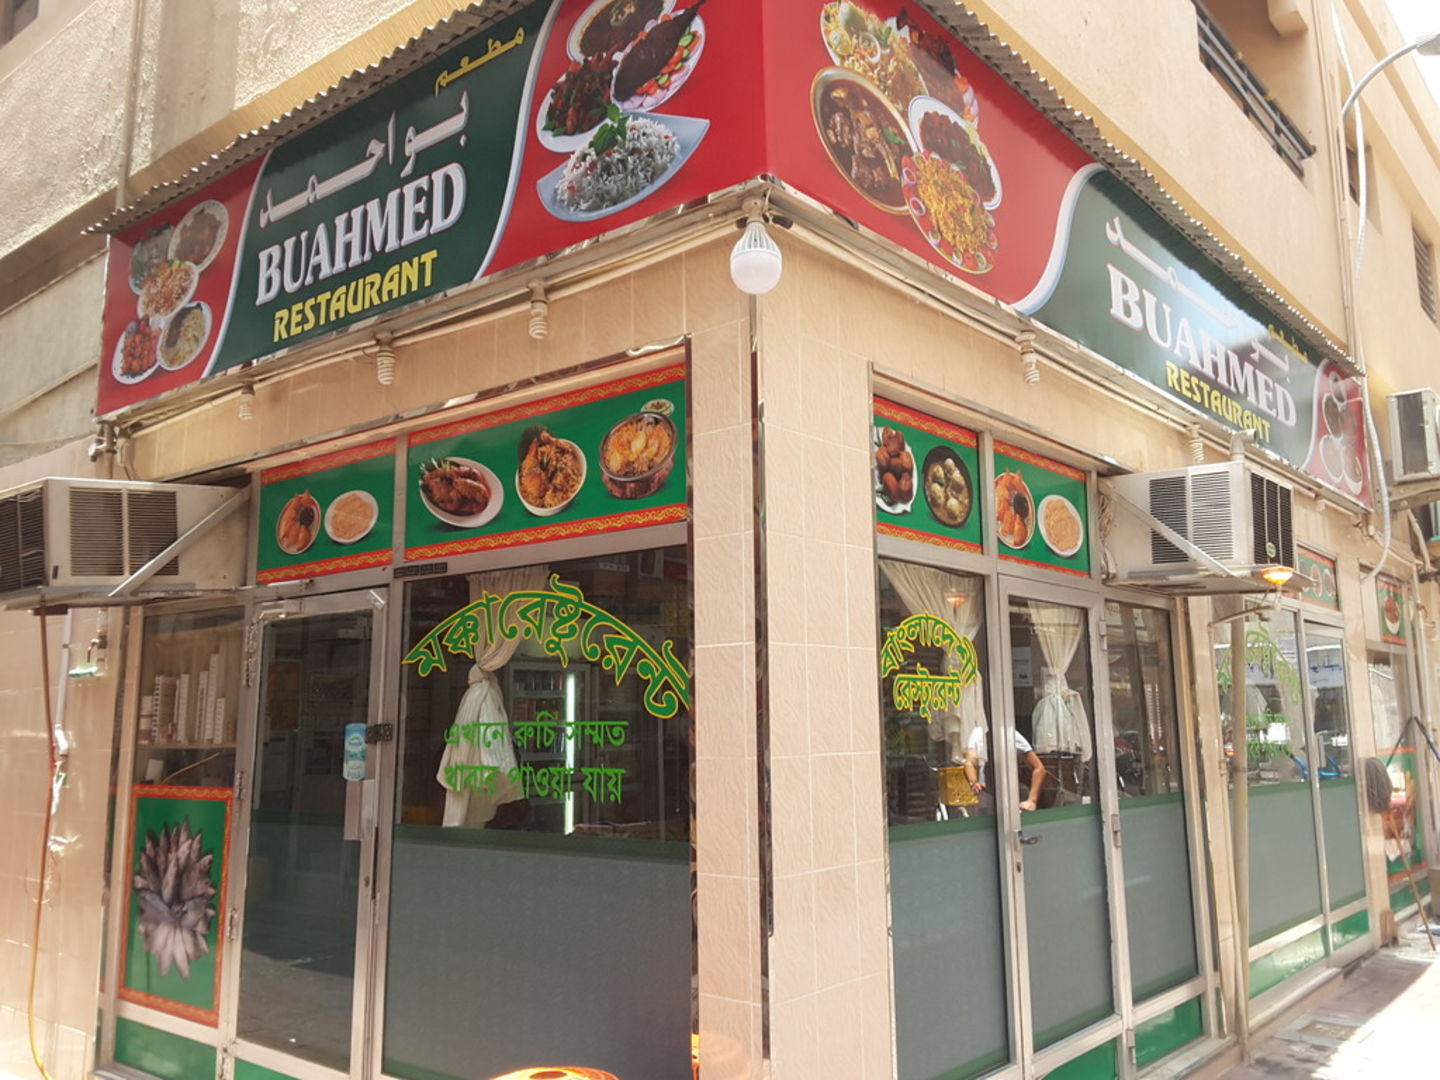 Walif-business-bu-ahmed-restaurant